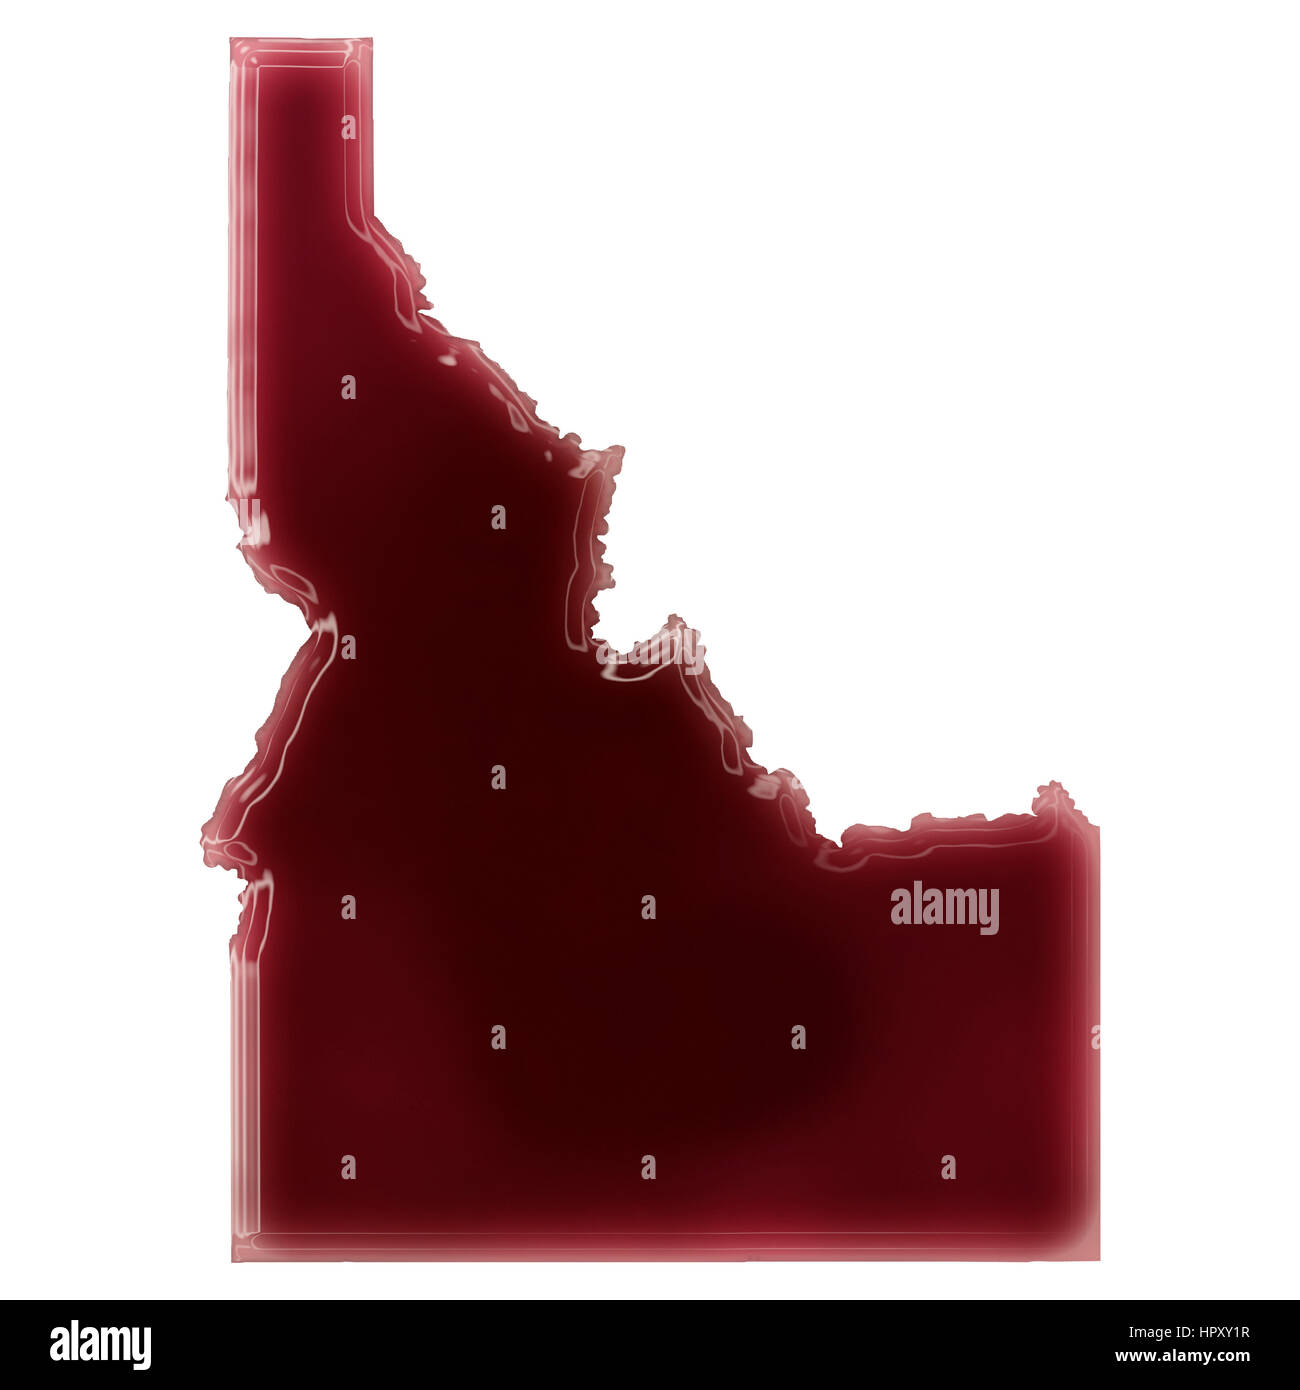 Pool of blood (or wine) that formed the shape of Idaho. (series) - Stock Image